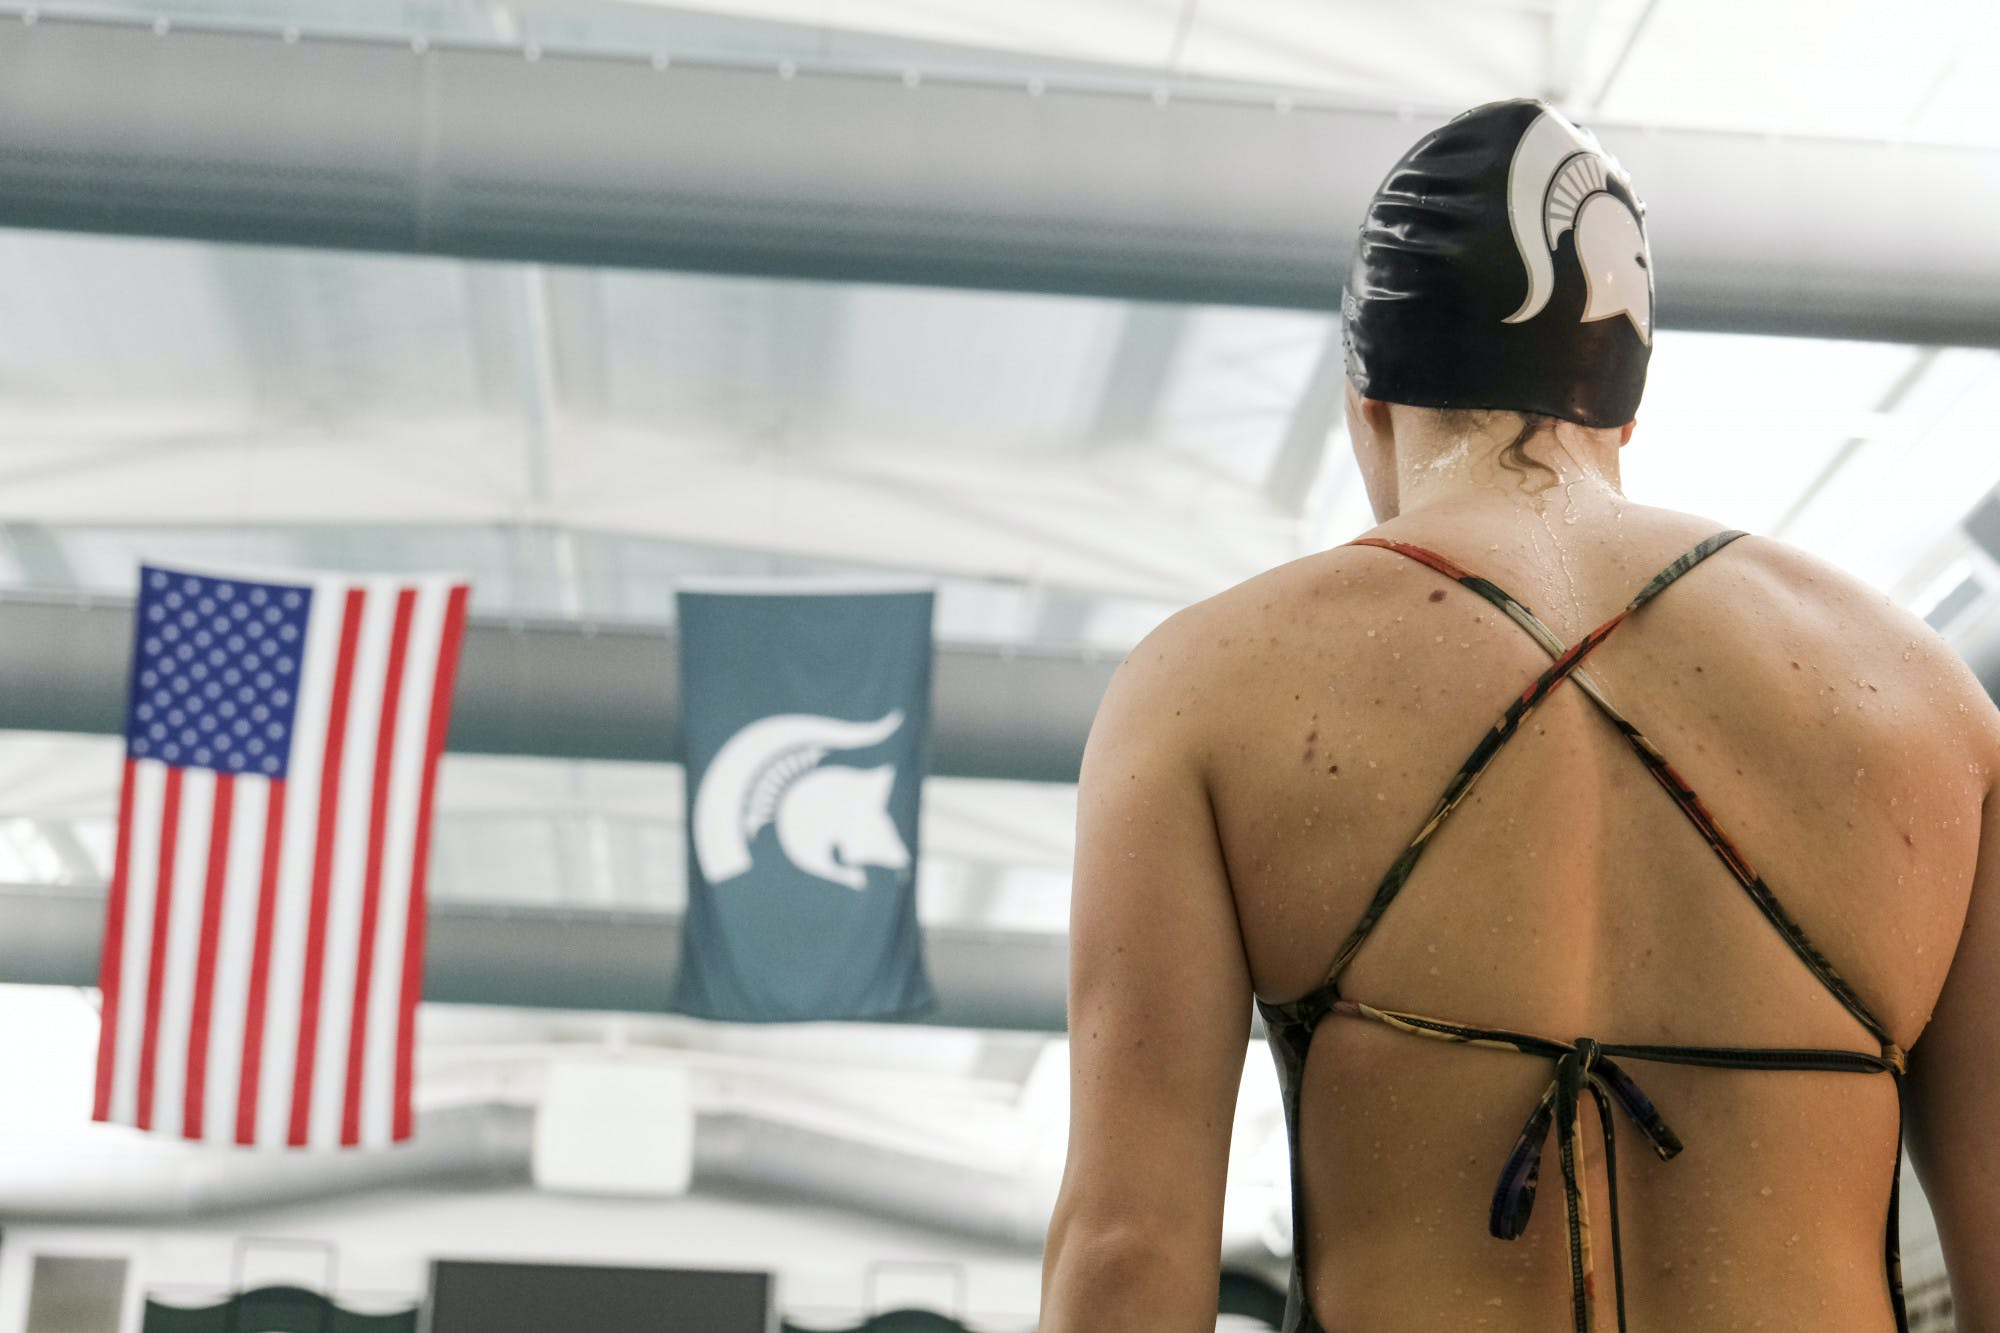 A person wearing a swimsuit and a swim cap with the Michigan State Spartans logo on it stands with their back to the camera, facing an American flag and a flag with the Michigan State Spartans logo on it that hang from the rafters.